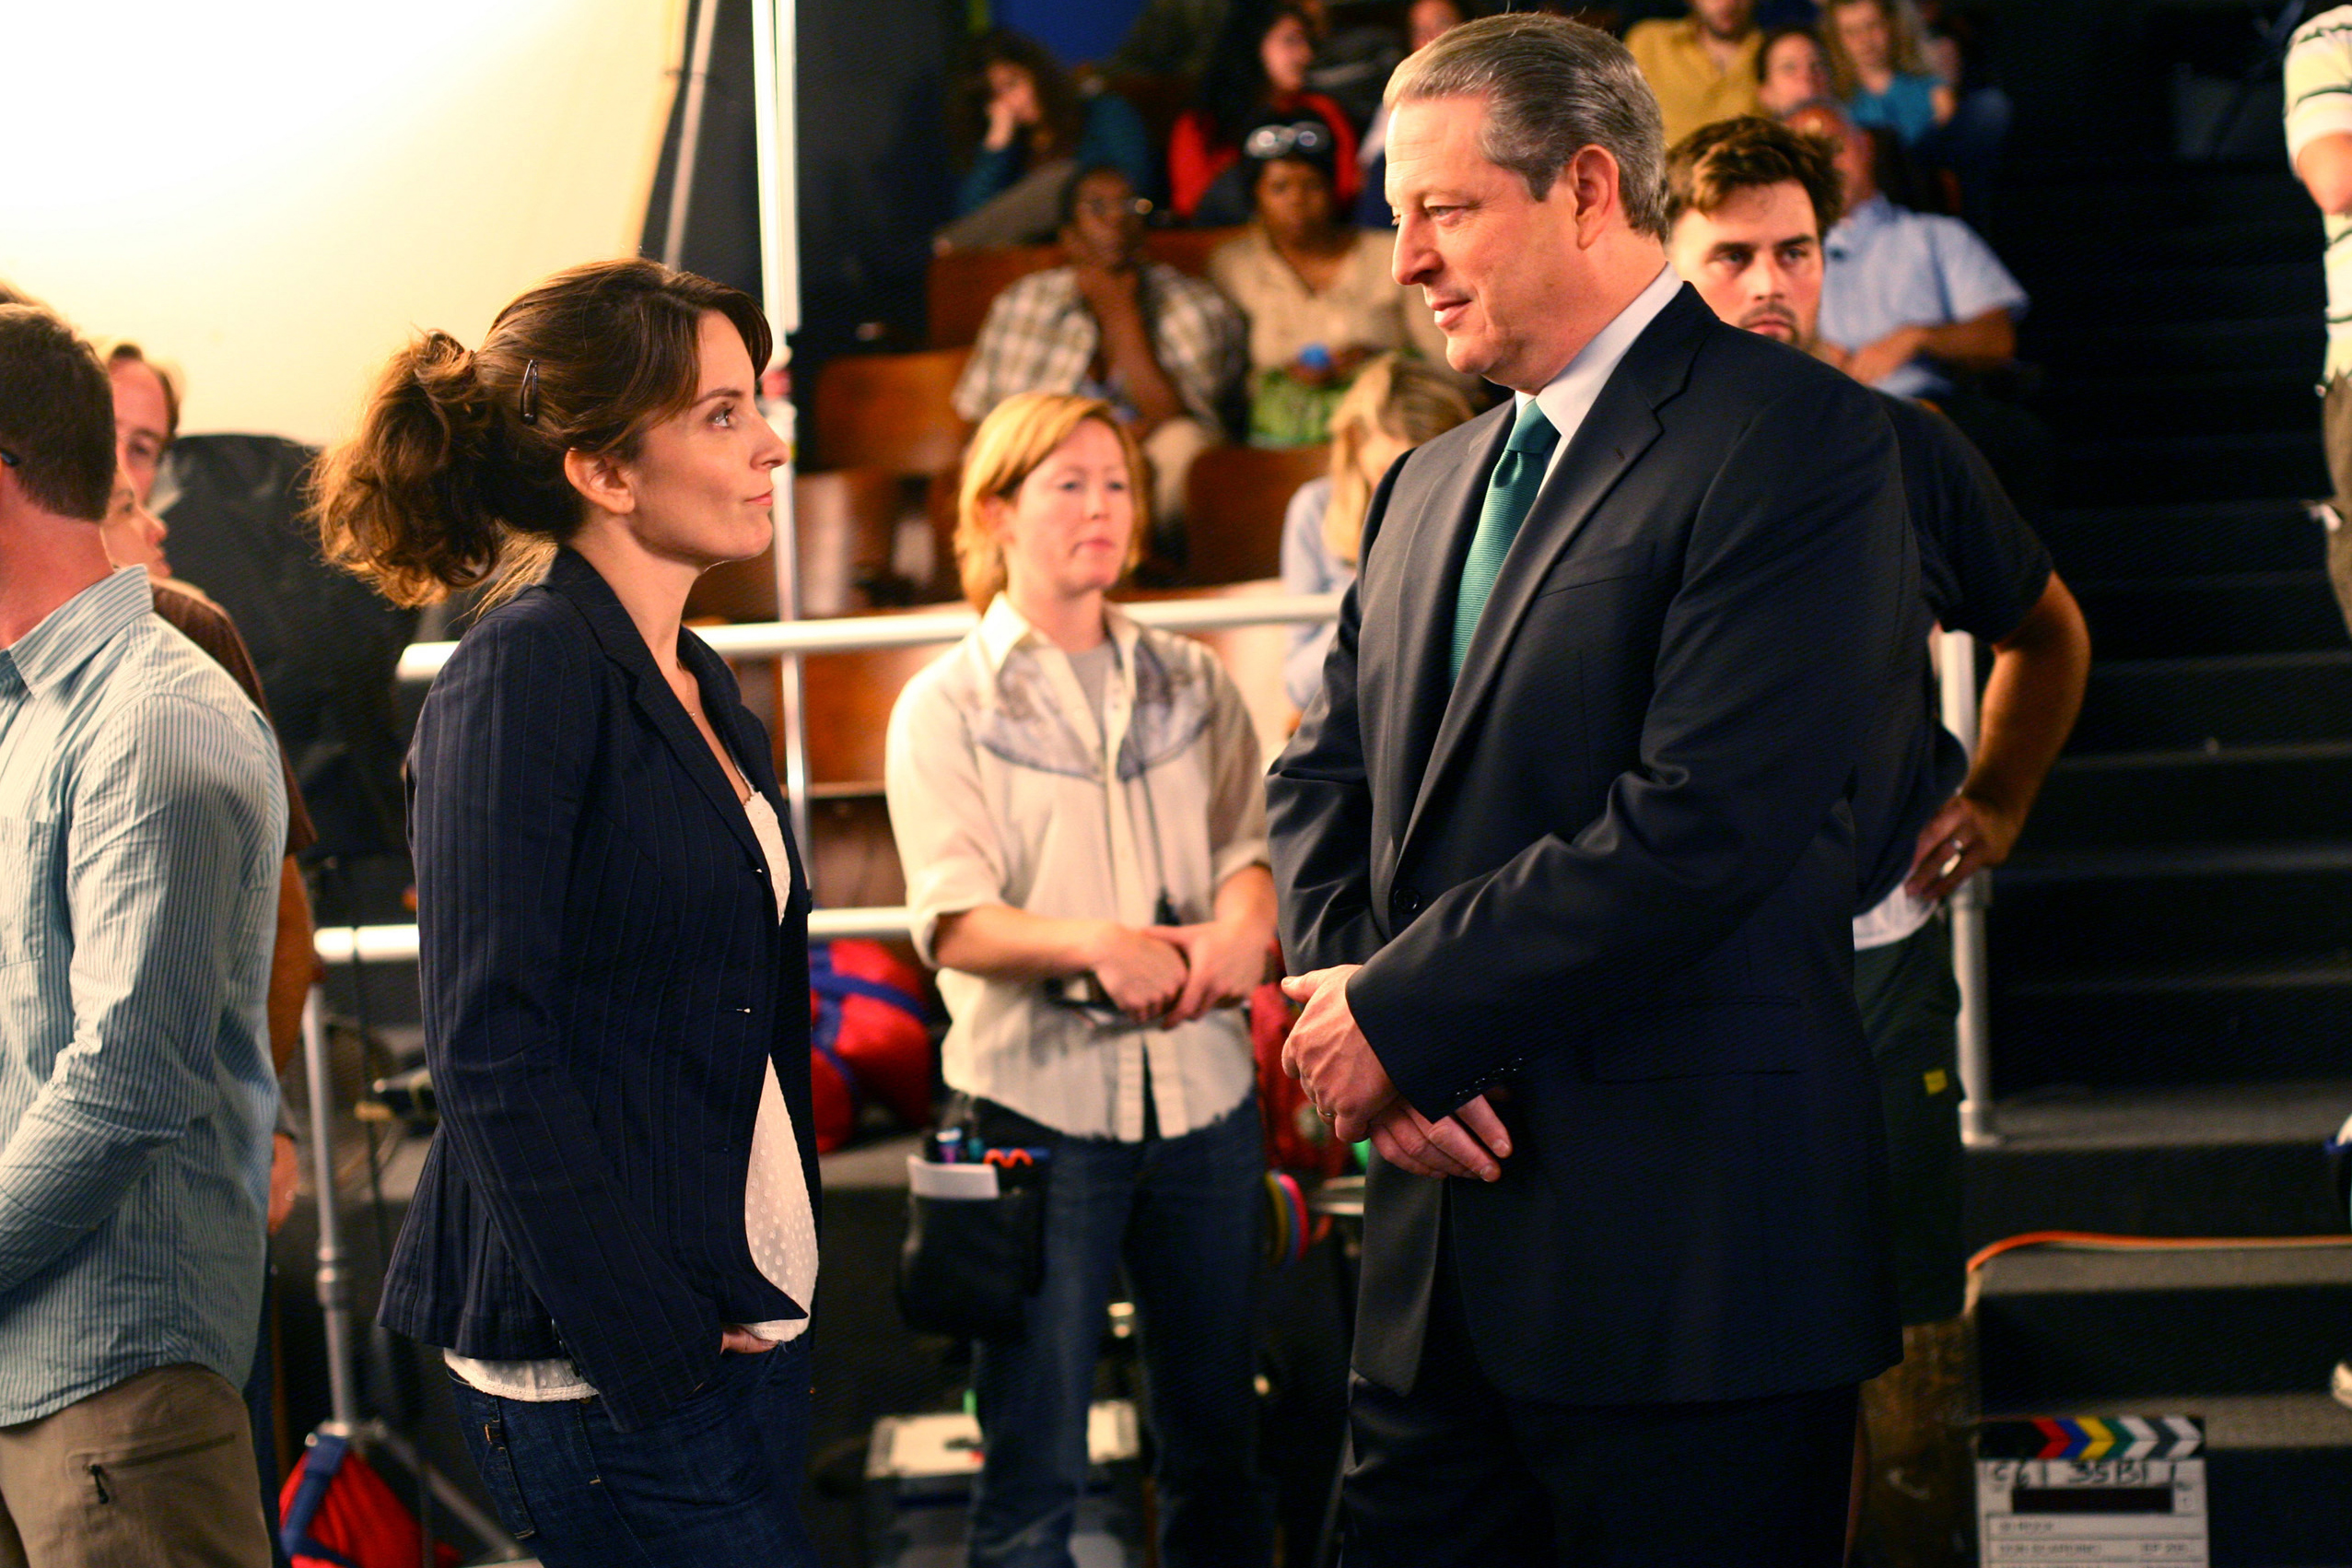 Tina Fey and former Vice President Al Gore on 30 Rock, 2007.